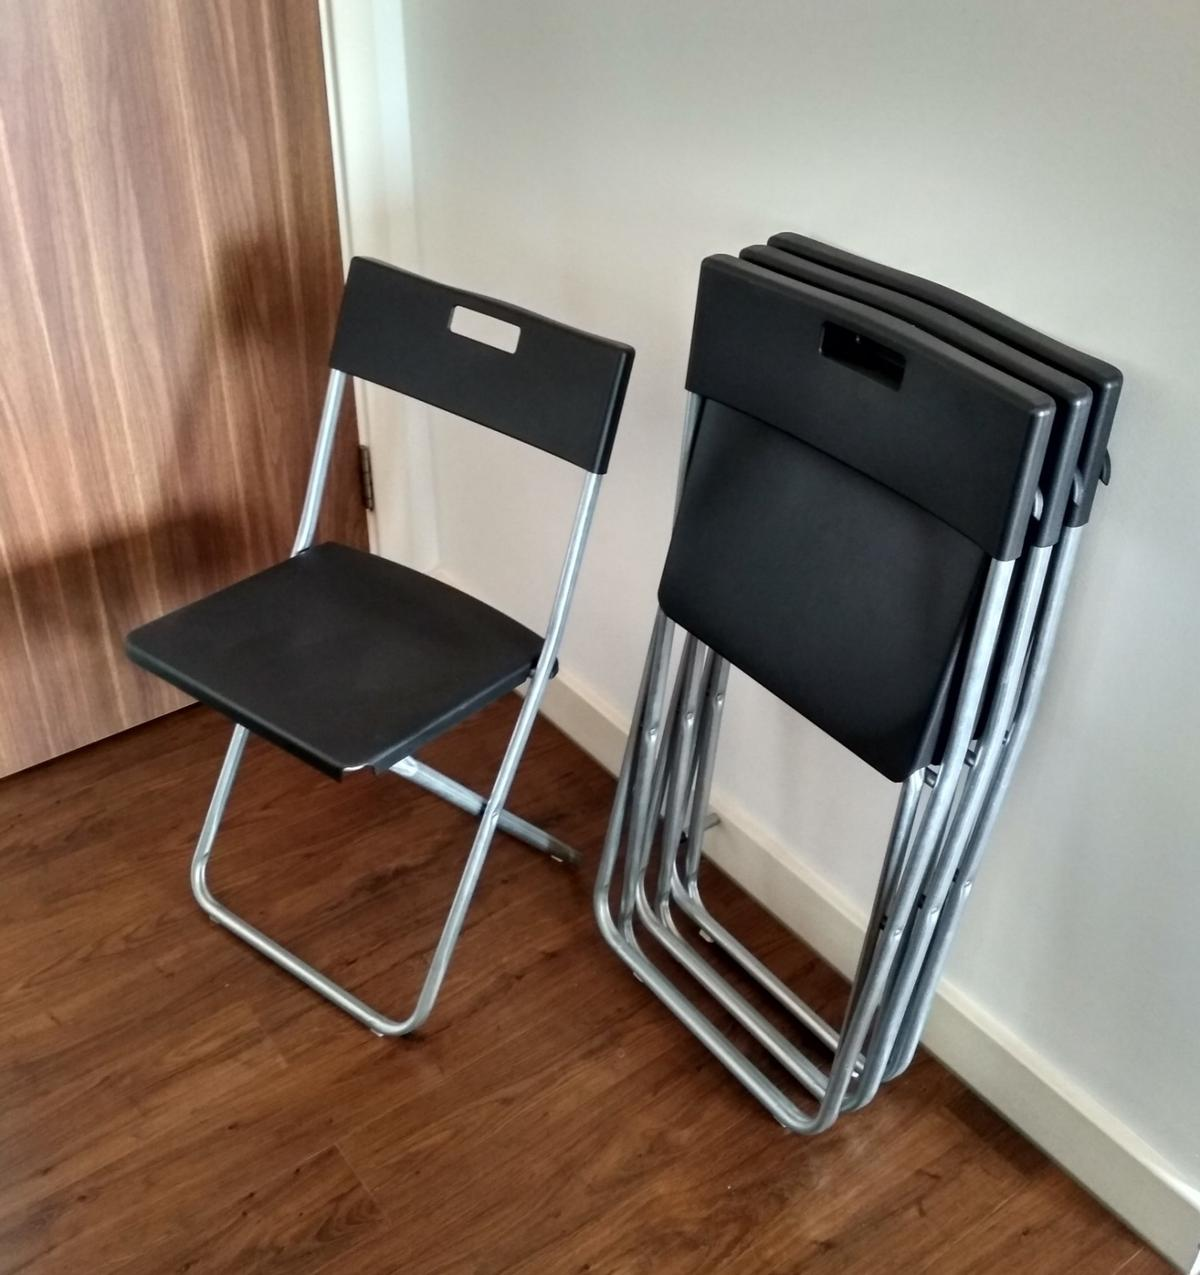 Ikea Gunde Folding Chair Black 4 Available In Se8 London For 4 50 For Sale Shpock